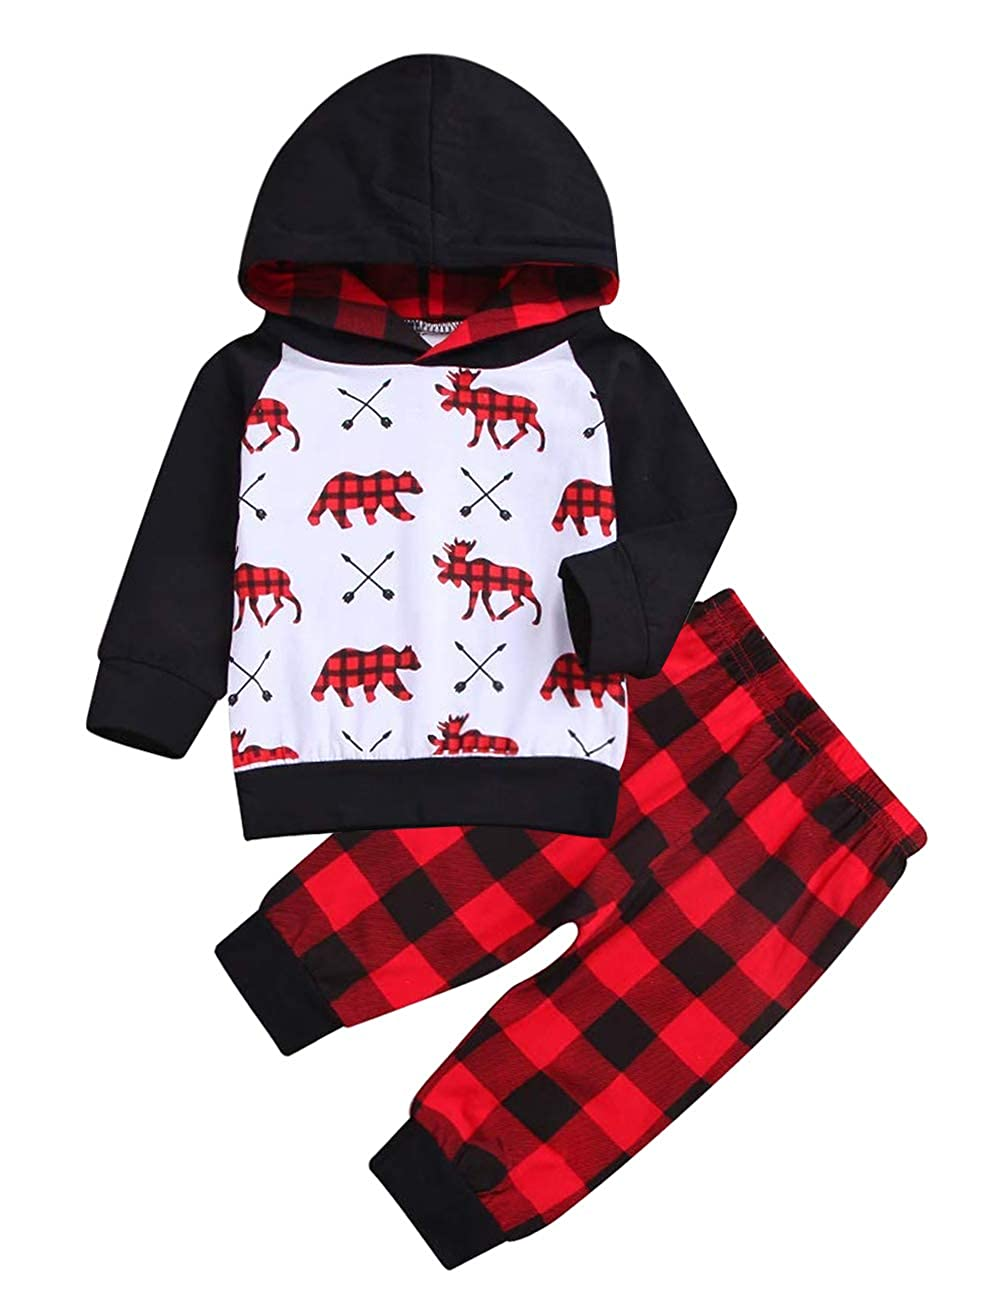 Baby Boy Clothes Bear Deer Printed Long Sleeve Hoodie Tops +Red Plaid Pants Outfit Set